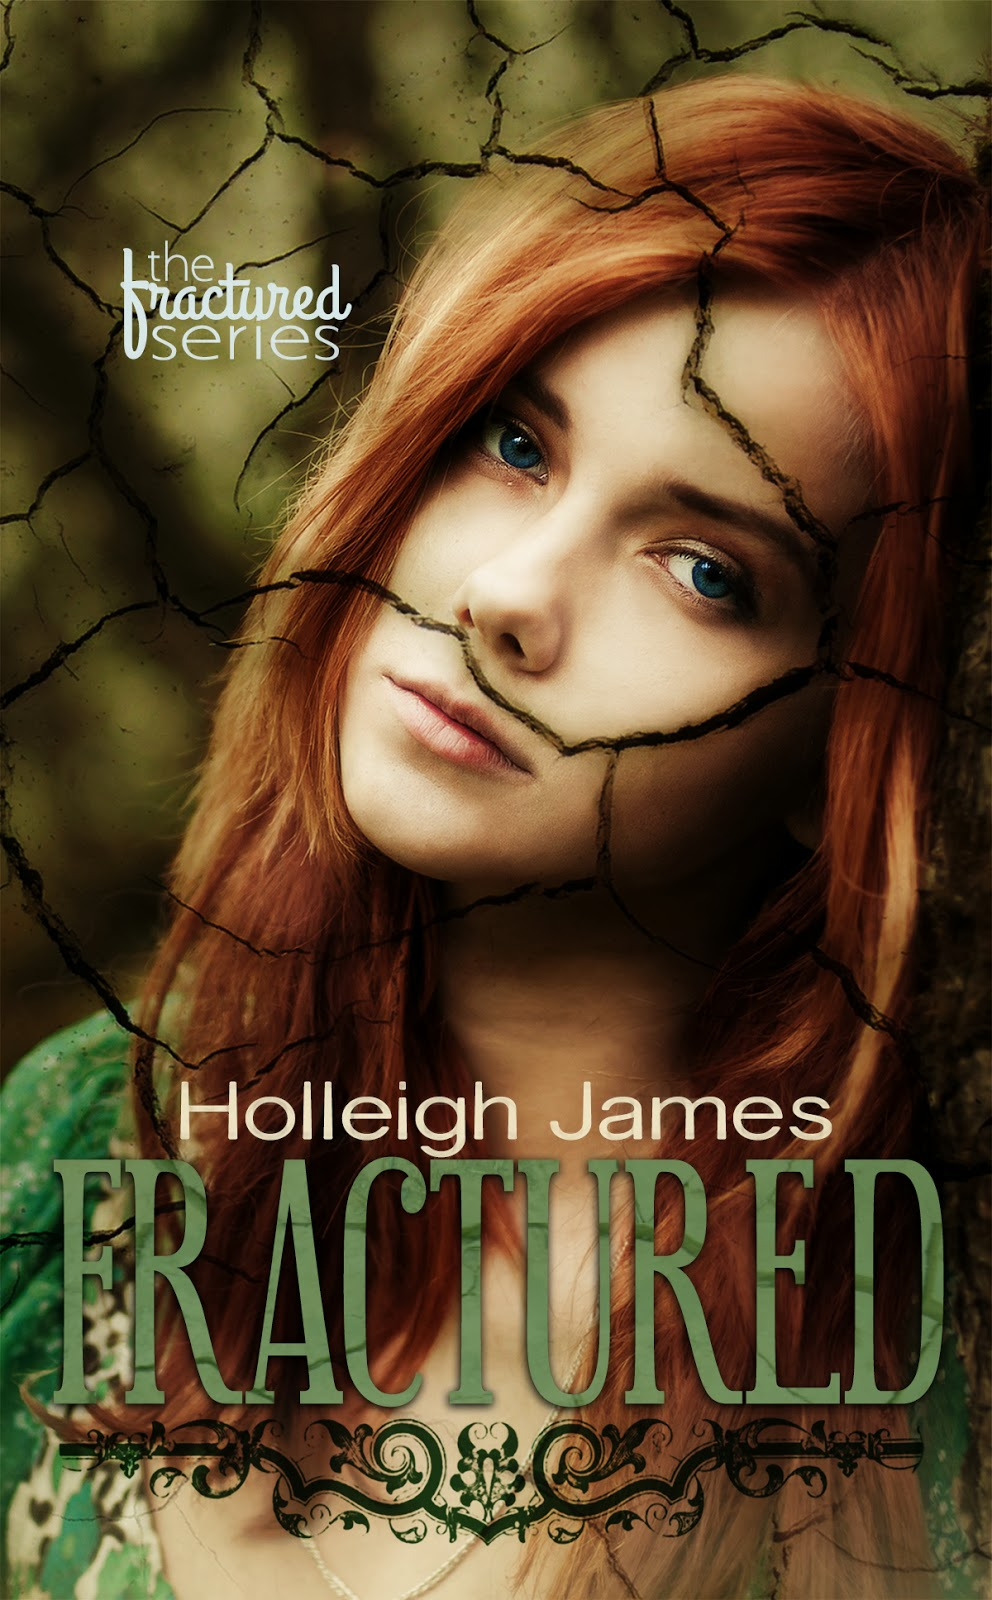 https://www.goodreads.com/book/show/19373765-fractured